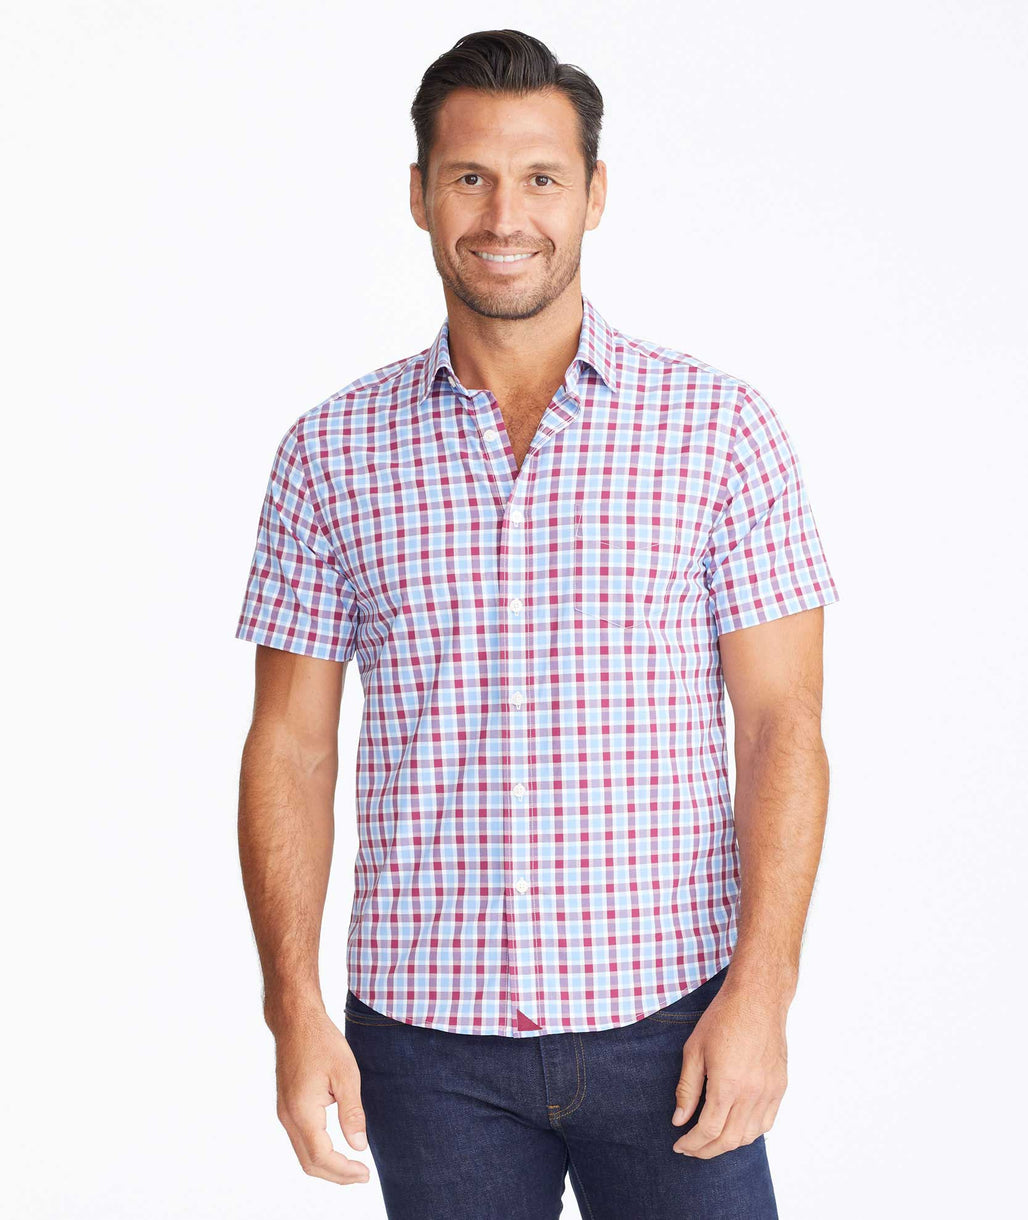 Model wearing a Light Blue Wrinkle-Free Performance+ Short-Sleeve Hopler Shirt